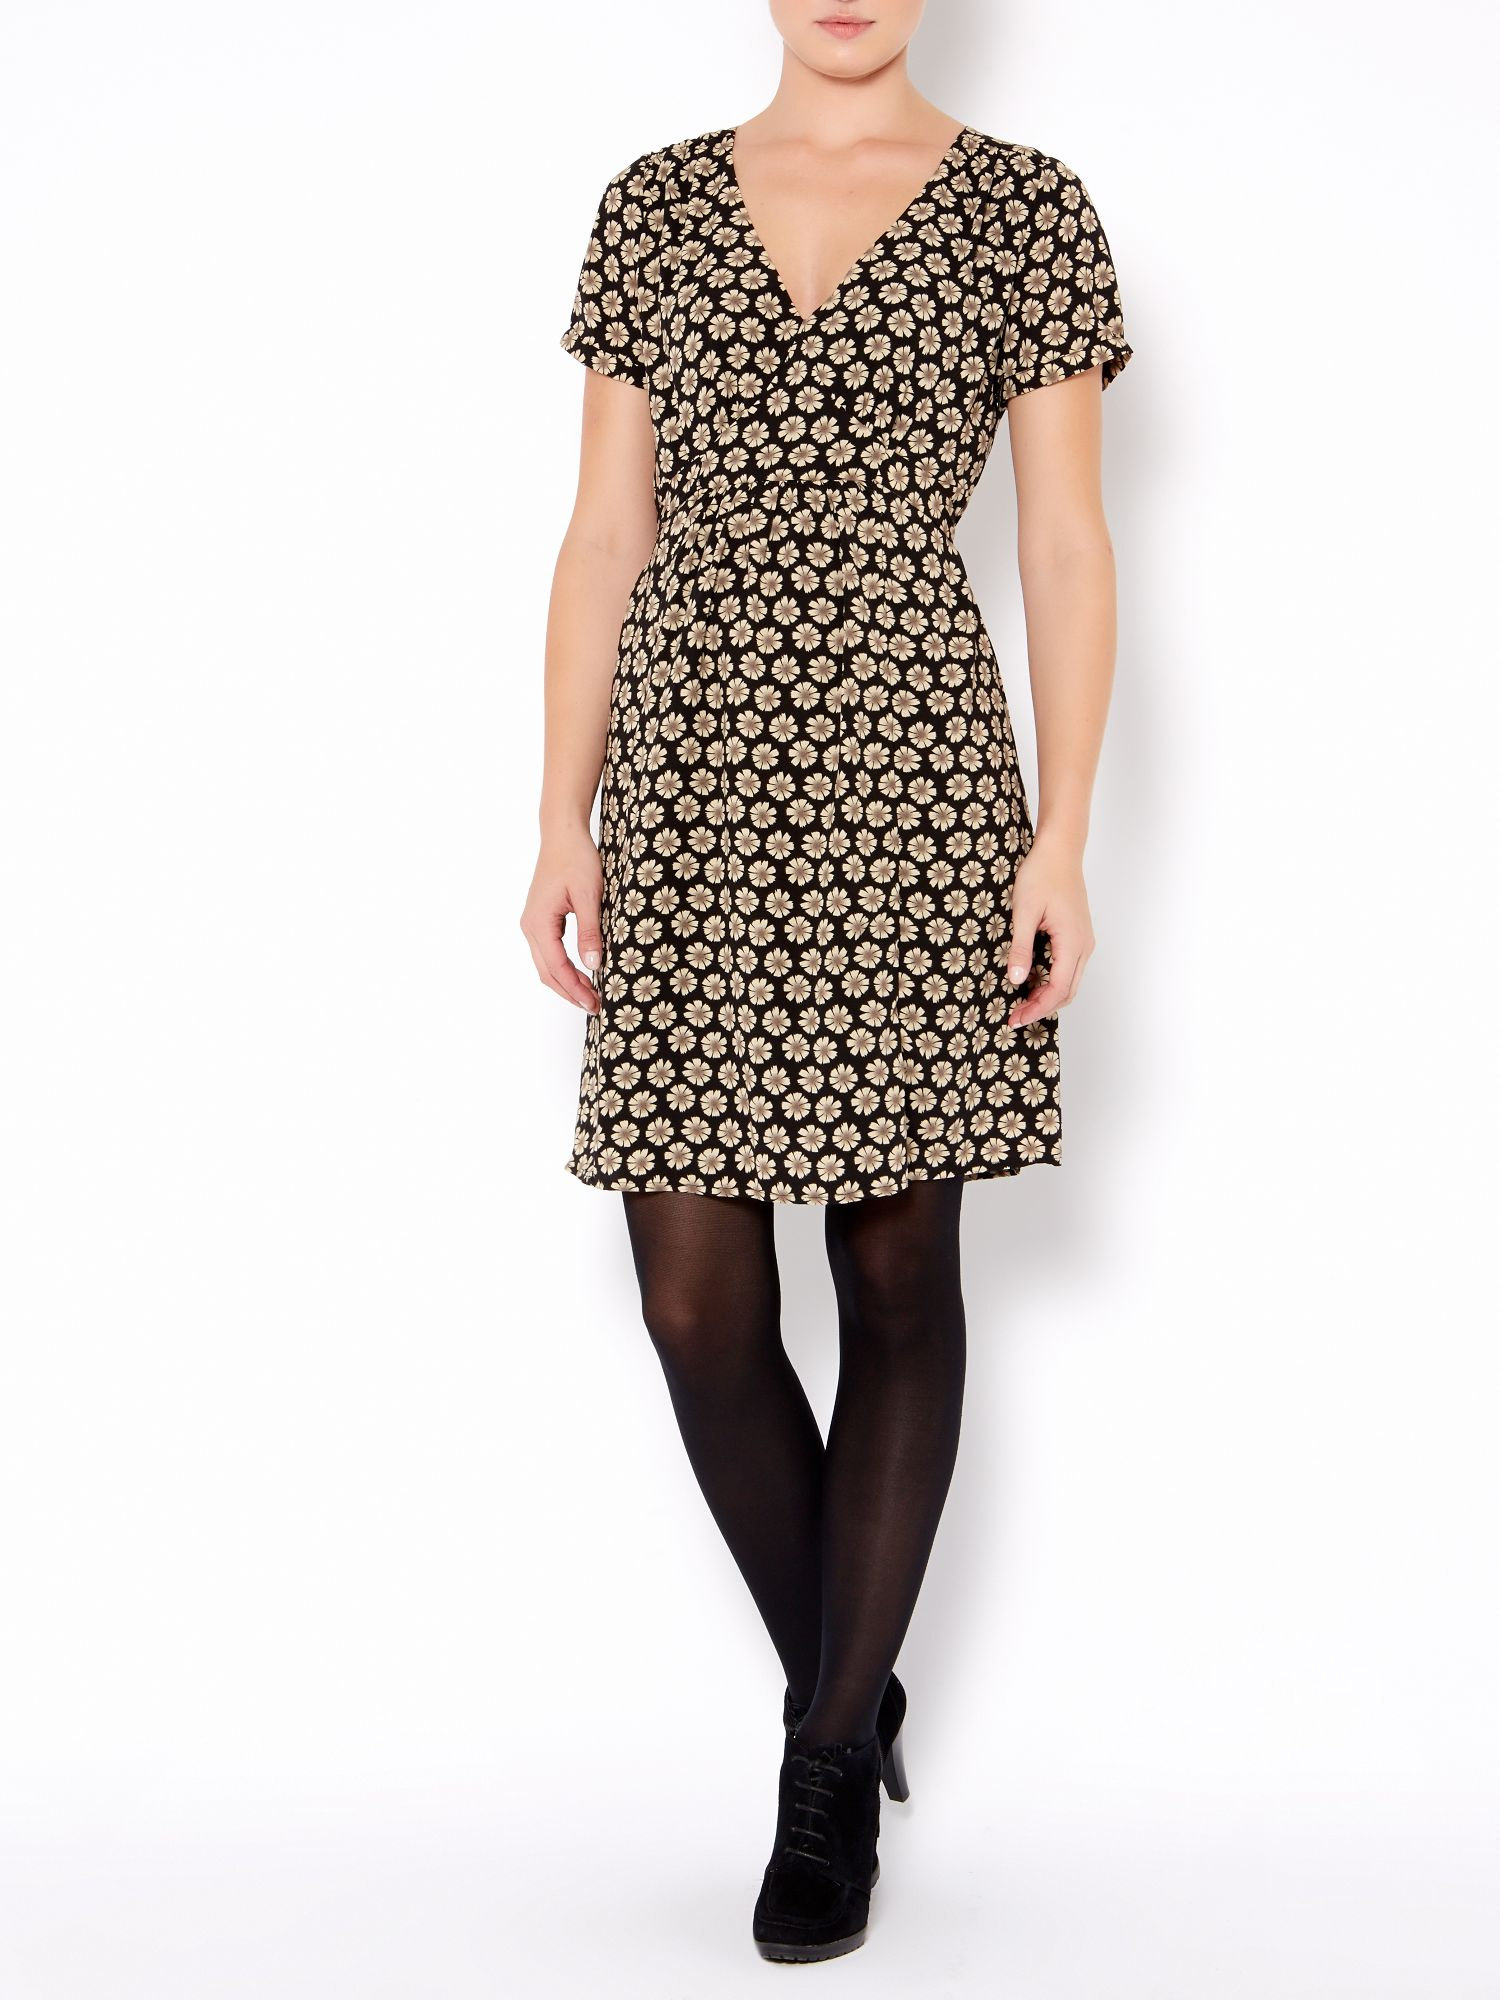 Ladies daisy print woven dress